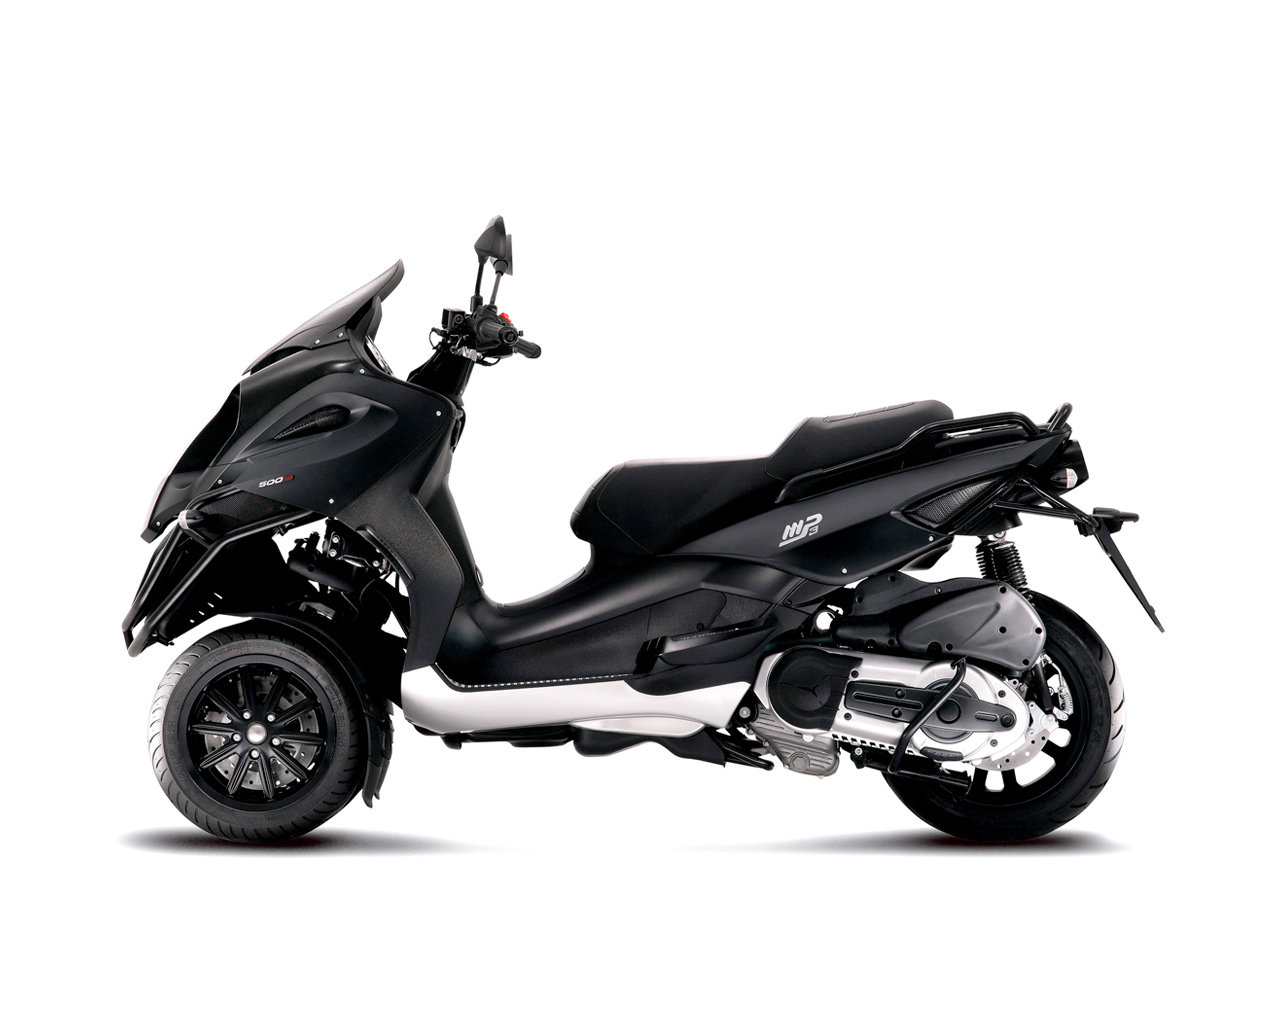 2012 piaggio mp3 500 picture 444024 motorcycle review top speed. Black Bedroom Furniture Sets. Home Design Ideas